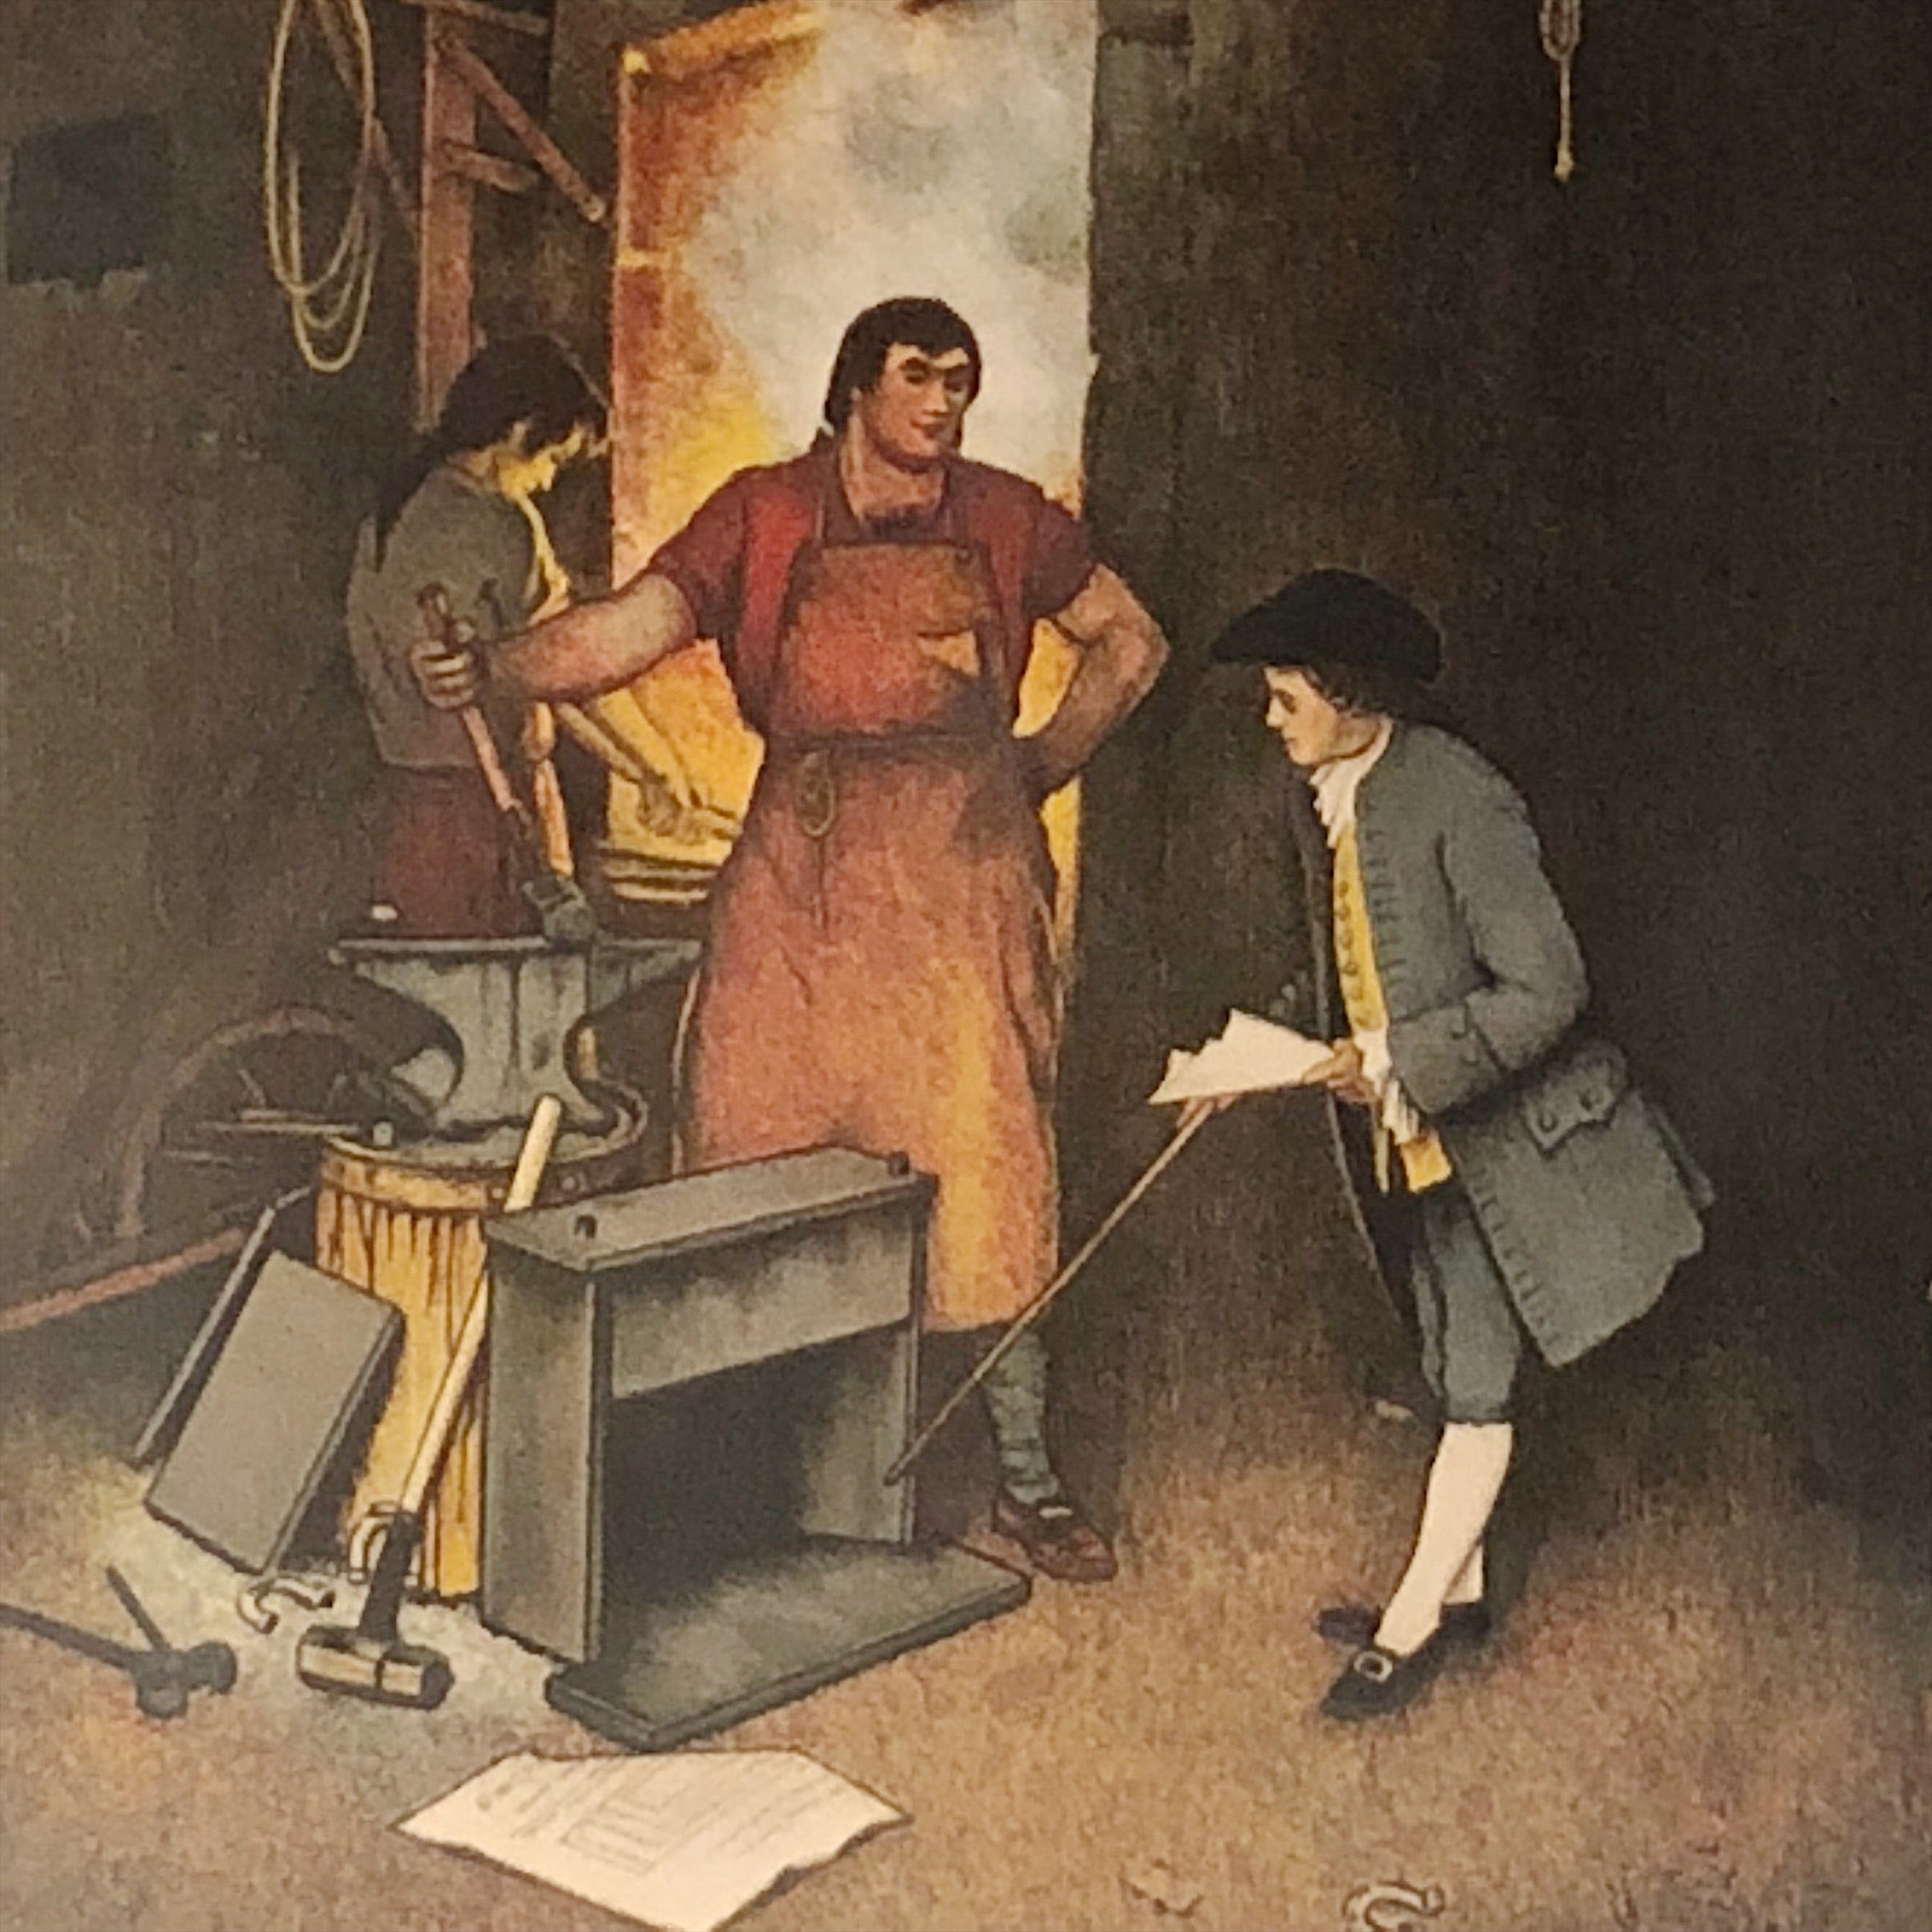 Norman Rockwell Lithograph of Blacksmith Shop from 1973